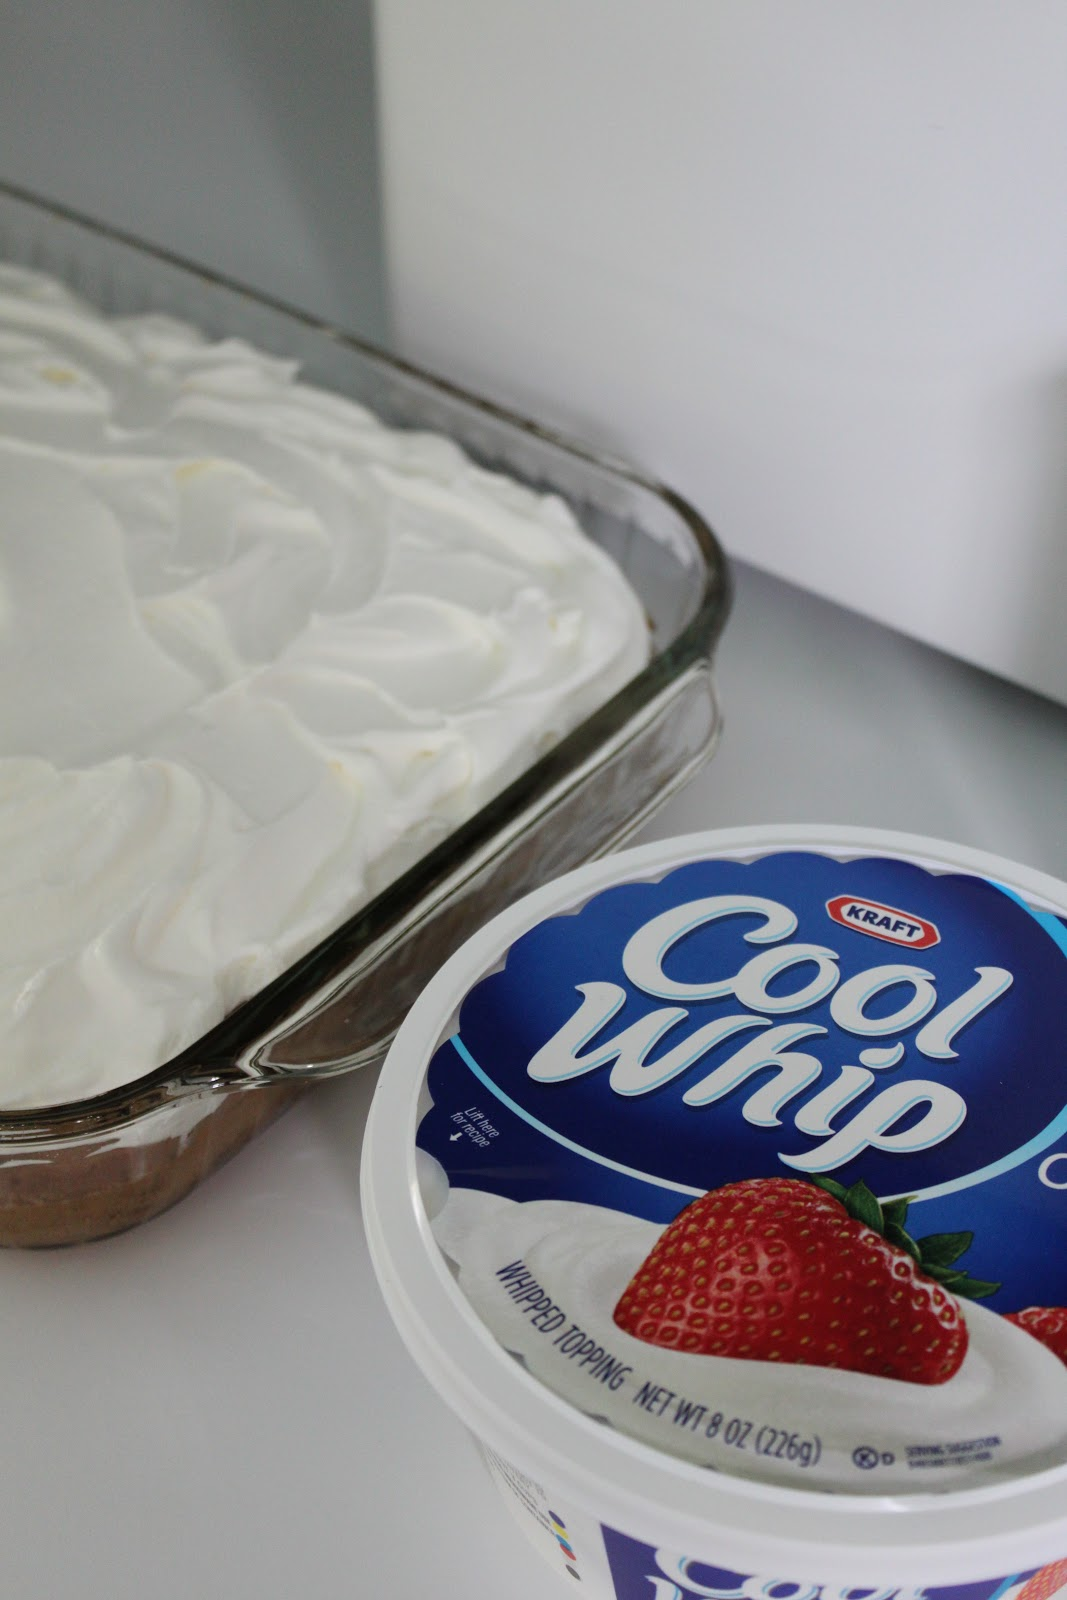 Can You Use A Pyrex Dish To Bake A Cake